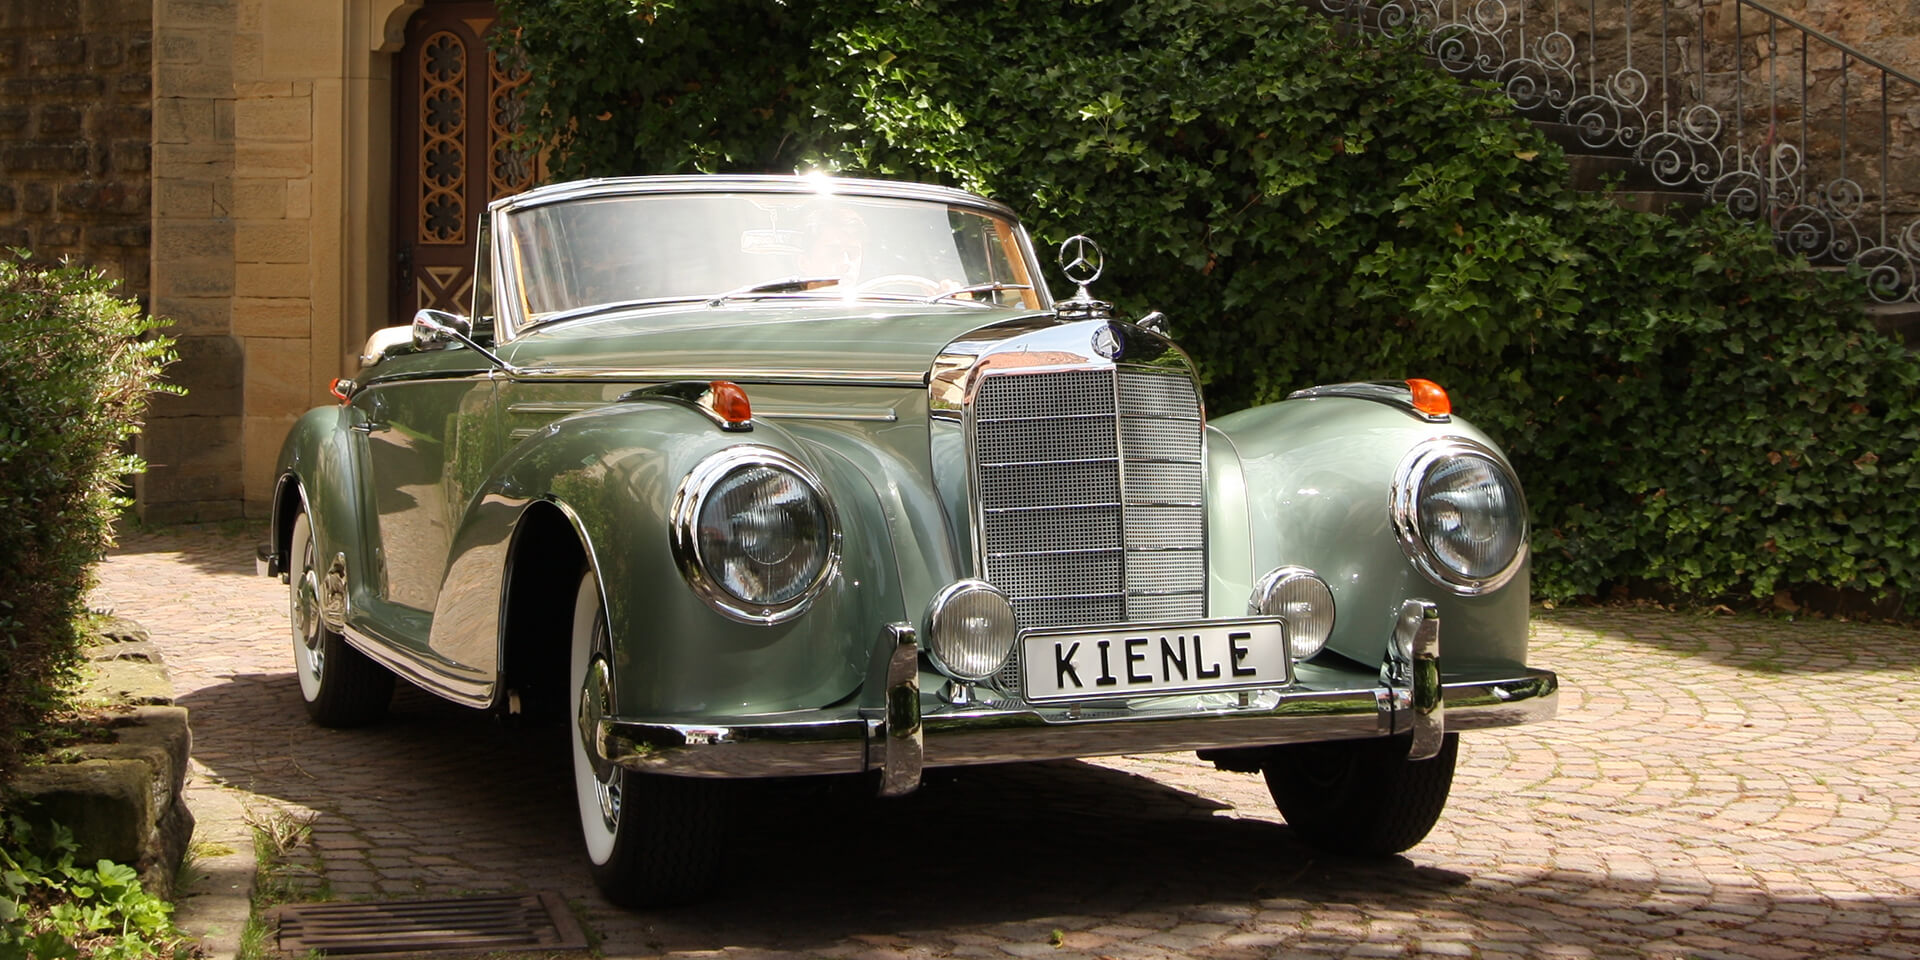 Vintage Mercedes cars from Kienle Automobiltechnik